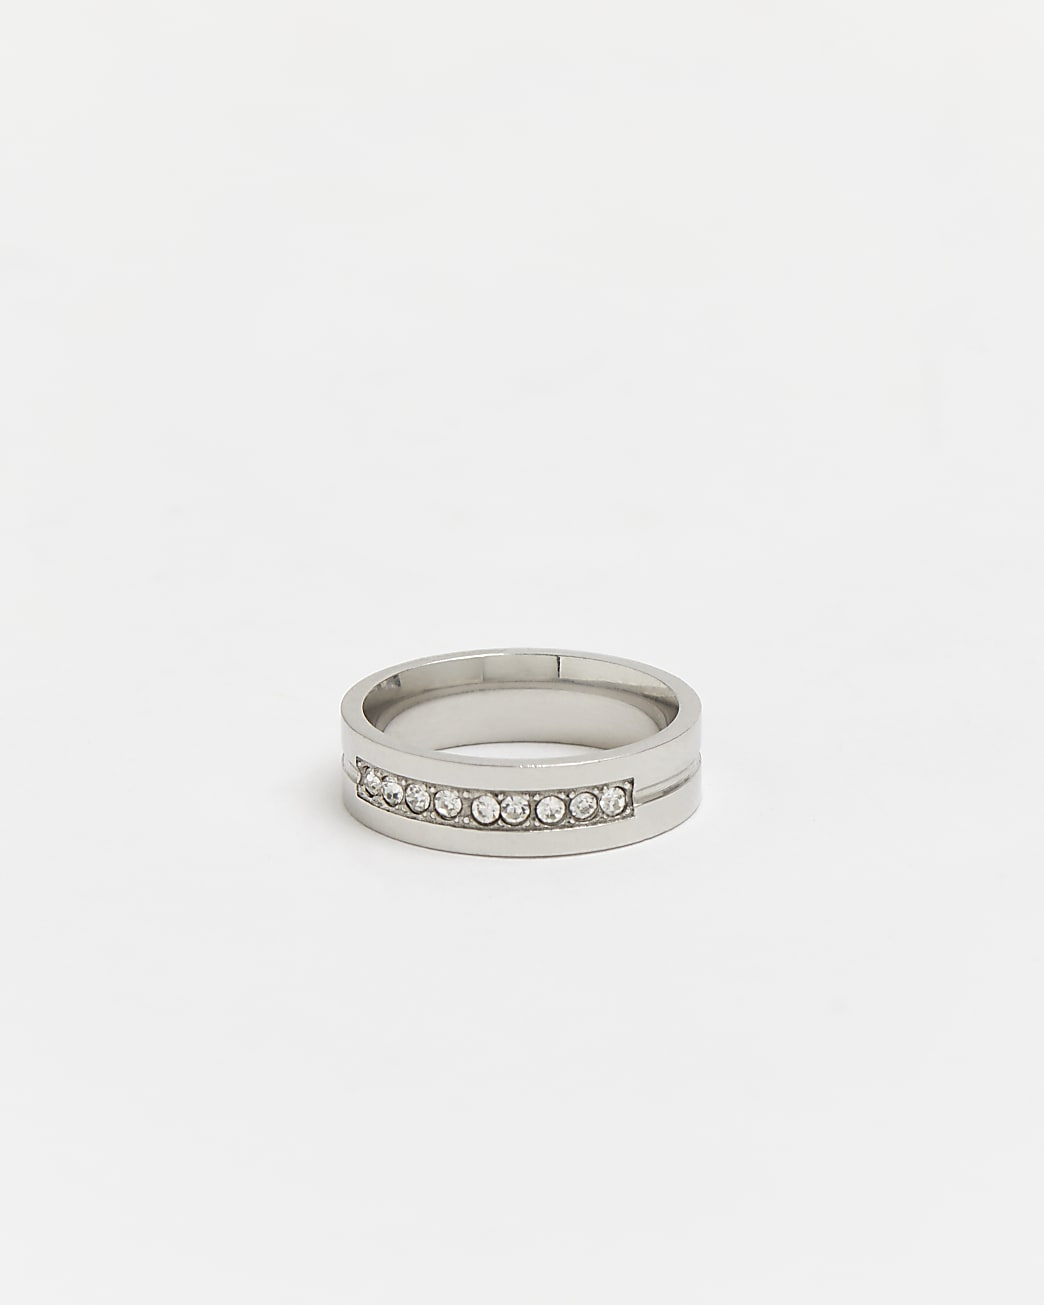 Silver stainless steel diamante band ring